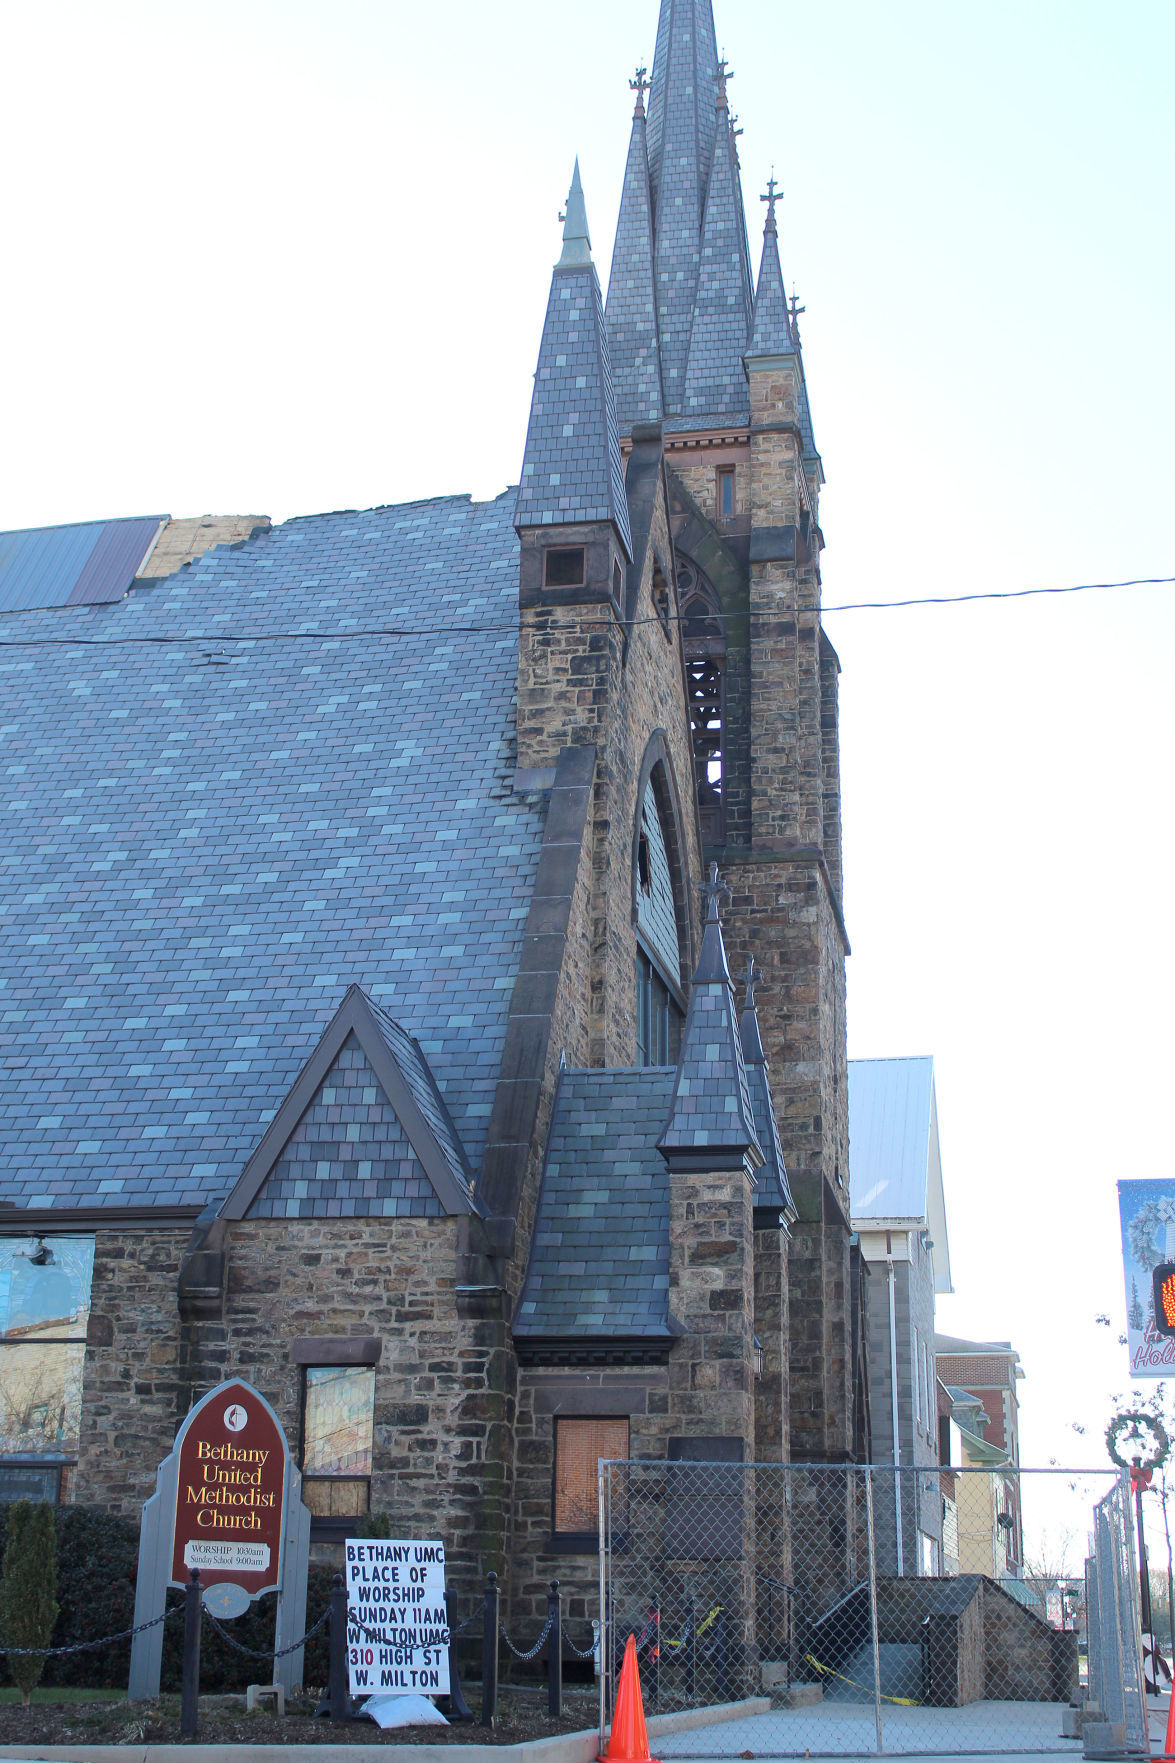 Church fire remains under investigation